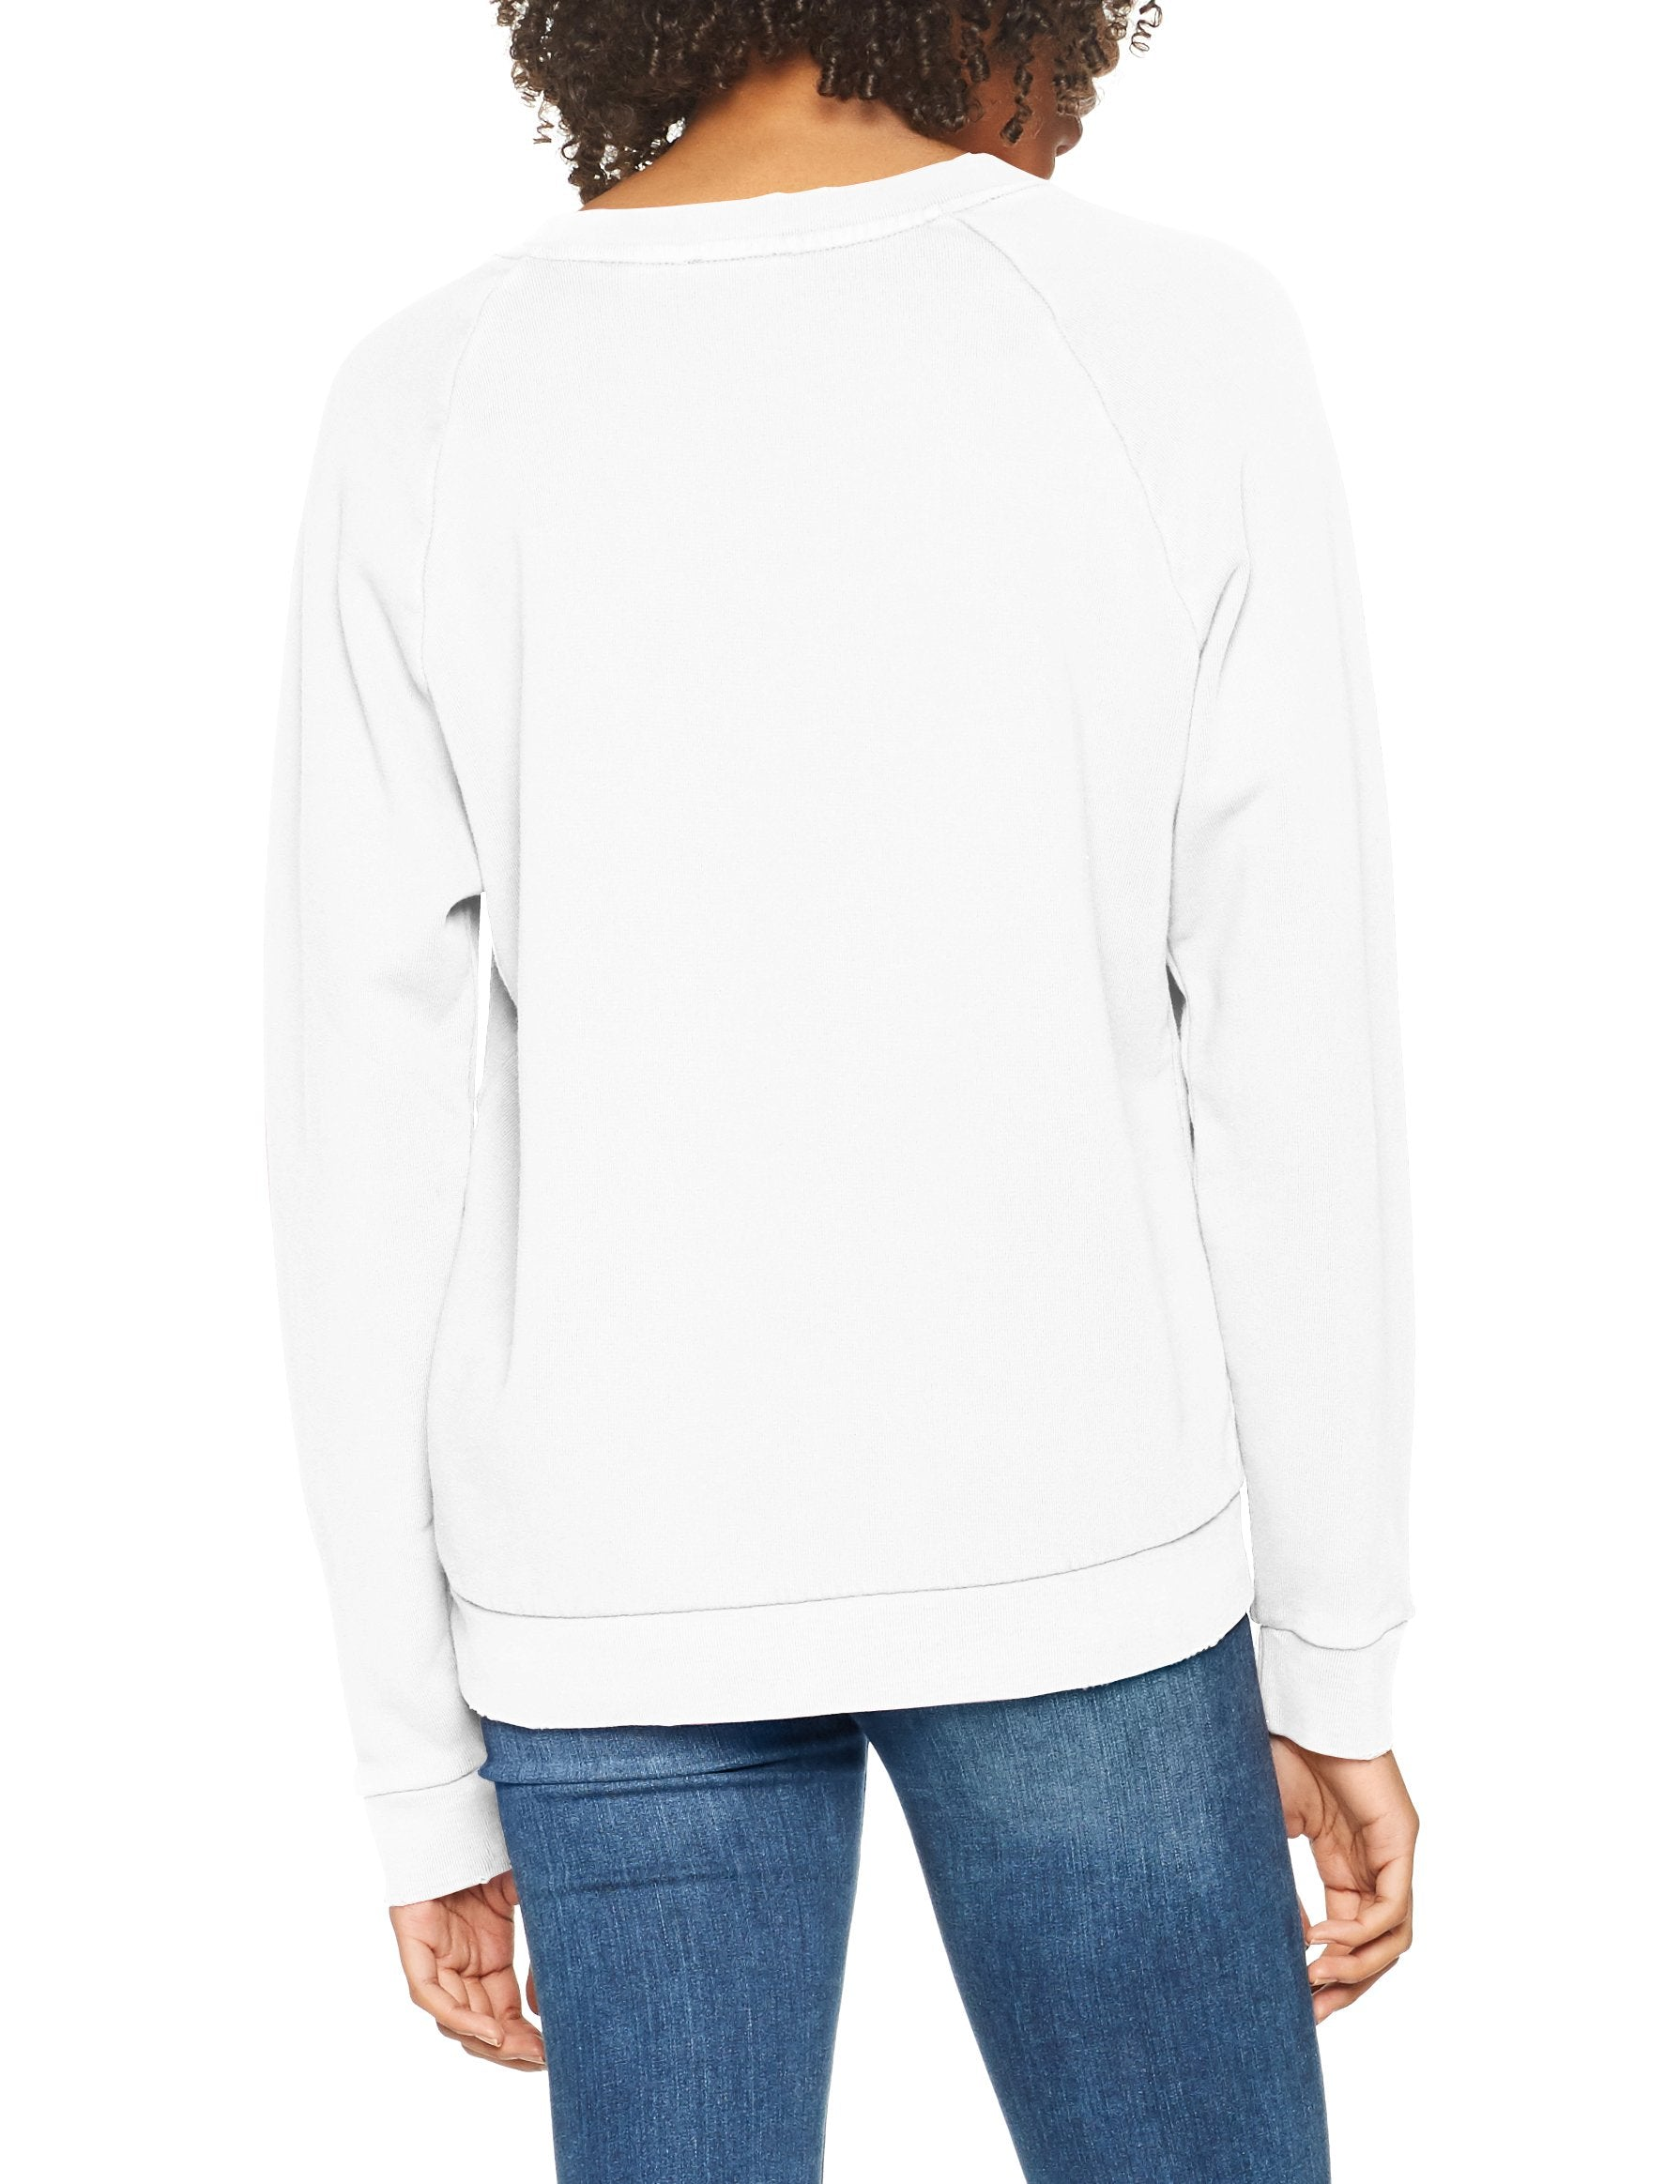 Levi's Relaxed Graphic Crew Felpa, Bianco (Better Batwing Sweatshirt White 0014), X-Large Donna Marche Famose